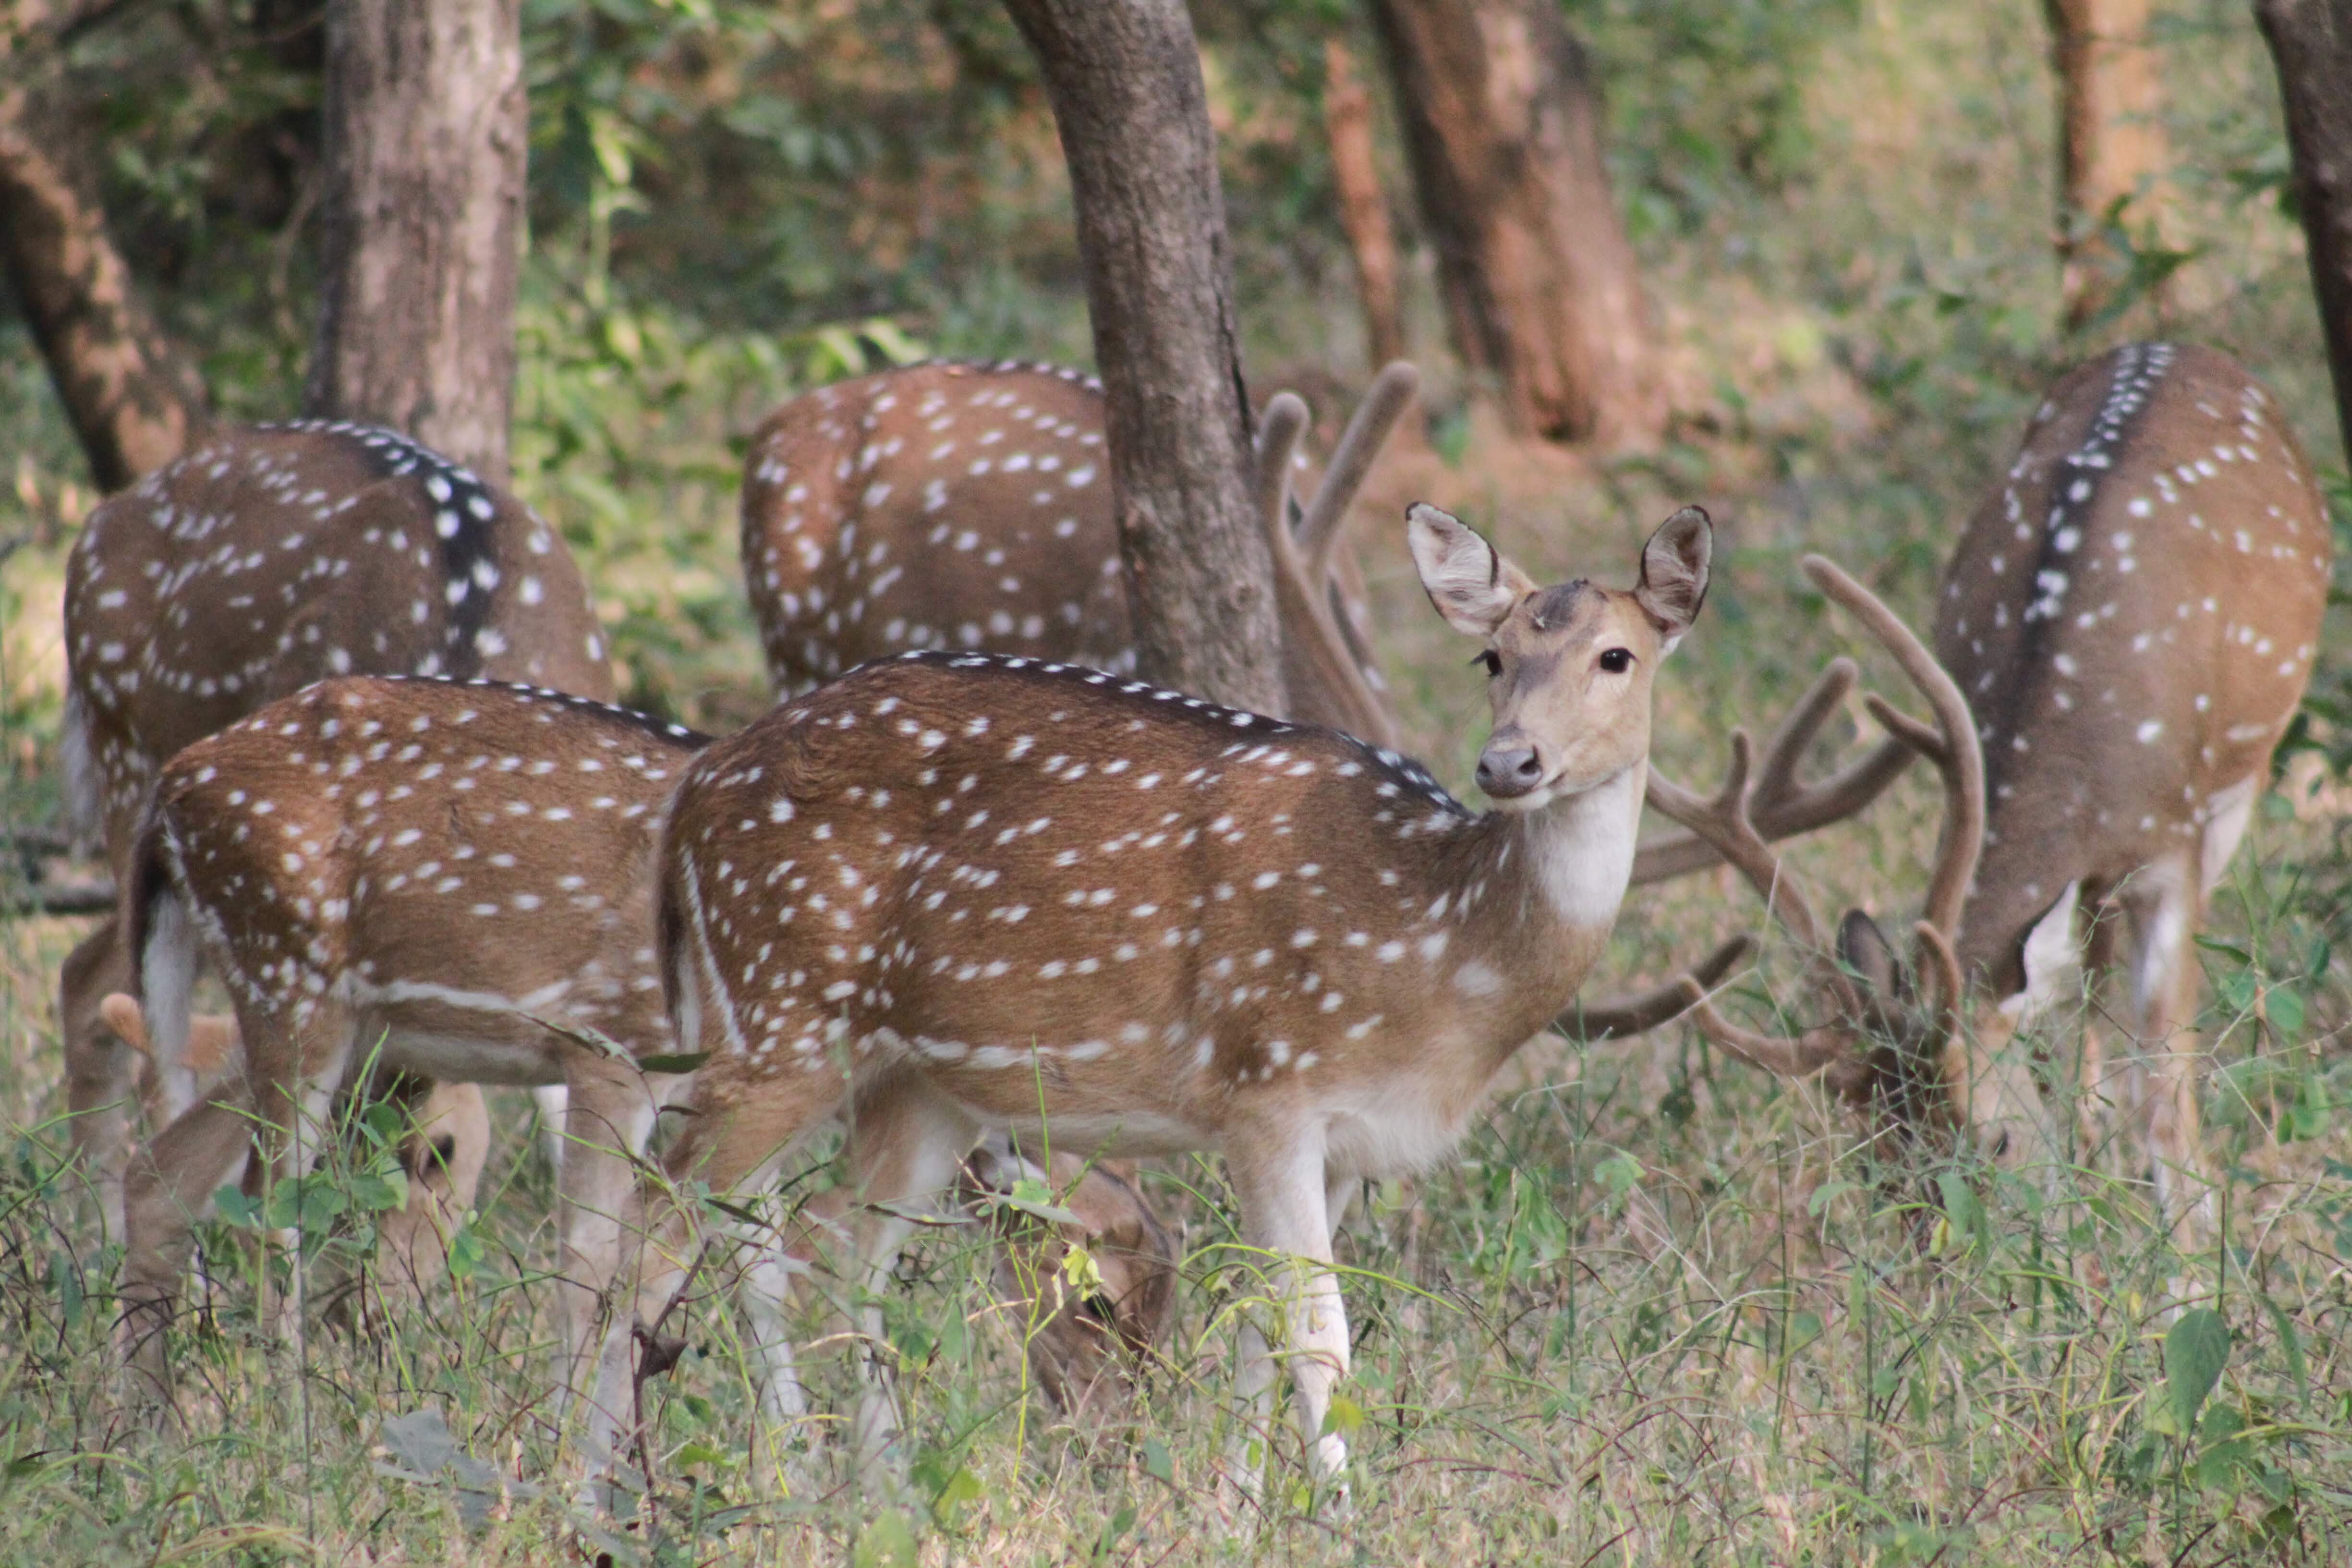 Spotted deer, Ranthambore National Park, India